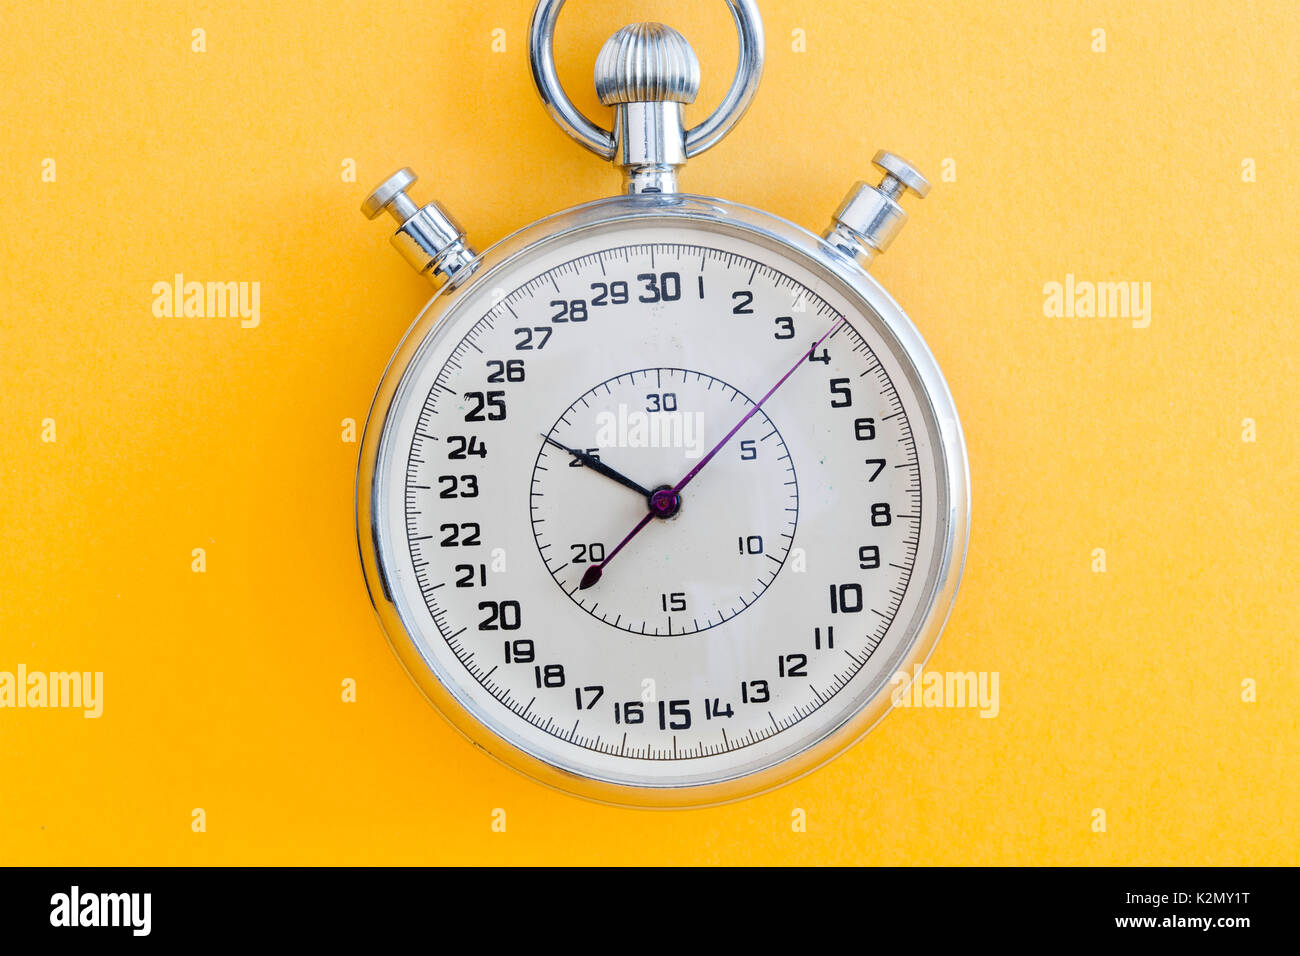 Retro style stopwatch chronometer on yellow paper textured background. Sport competition time management concept. Macro view, soft focus. - Stock Image